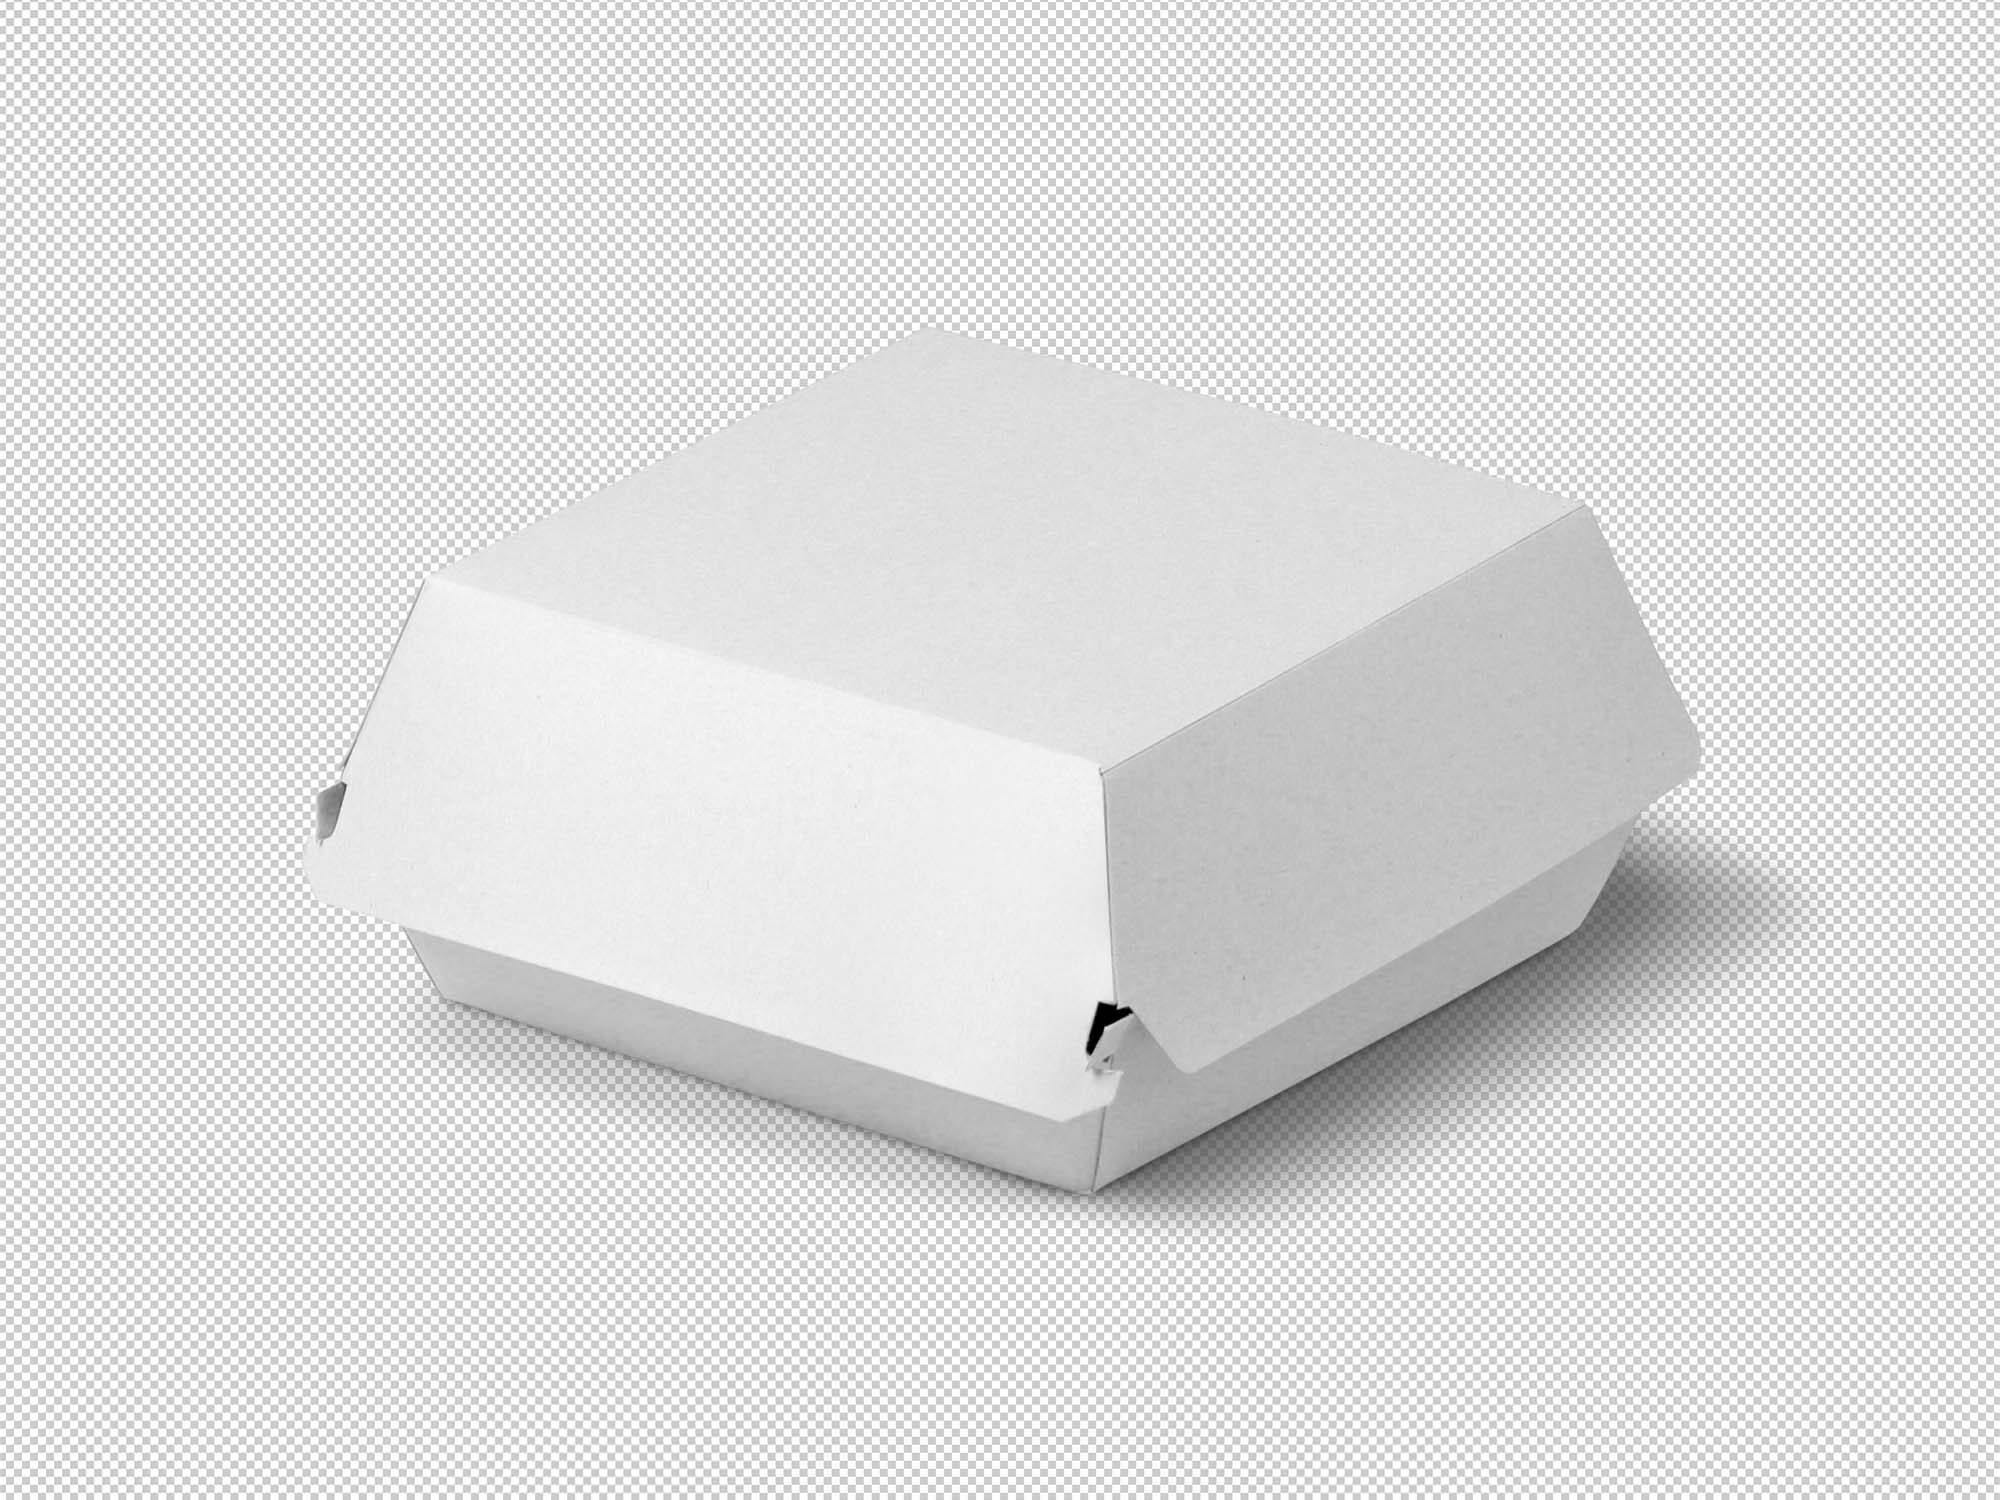 Burger Packaging Mockup 2